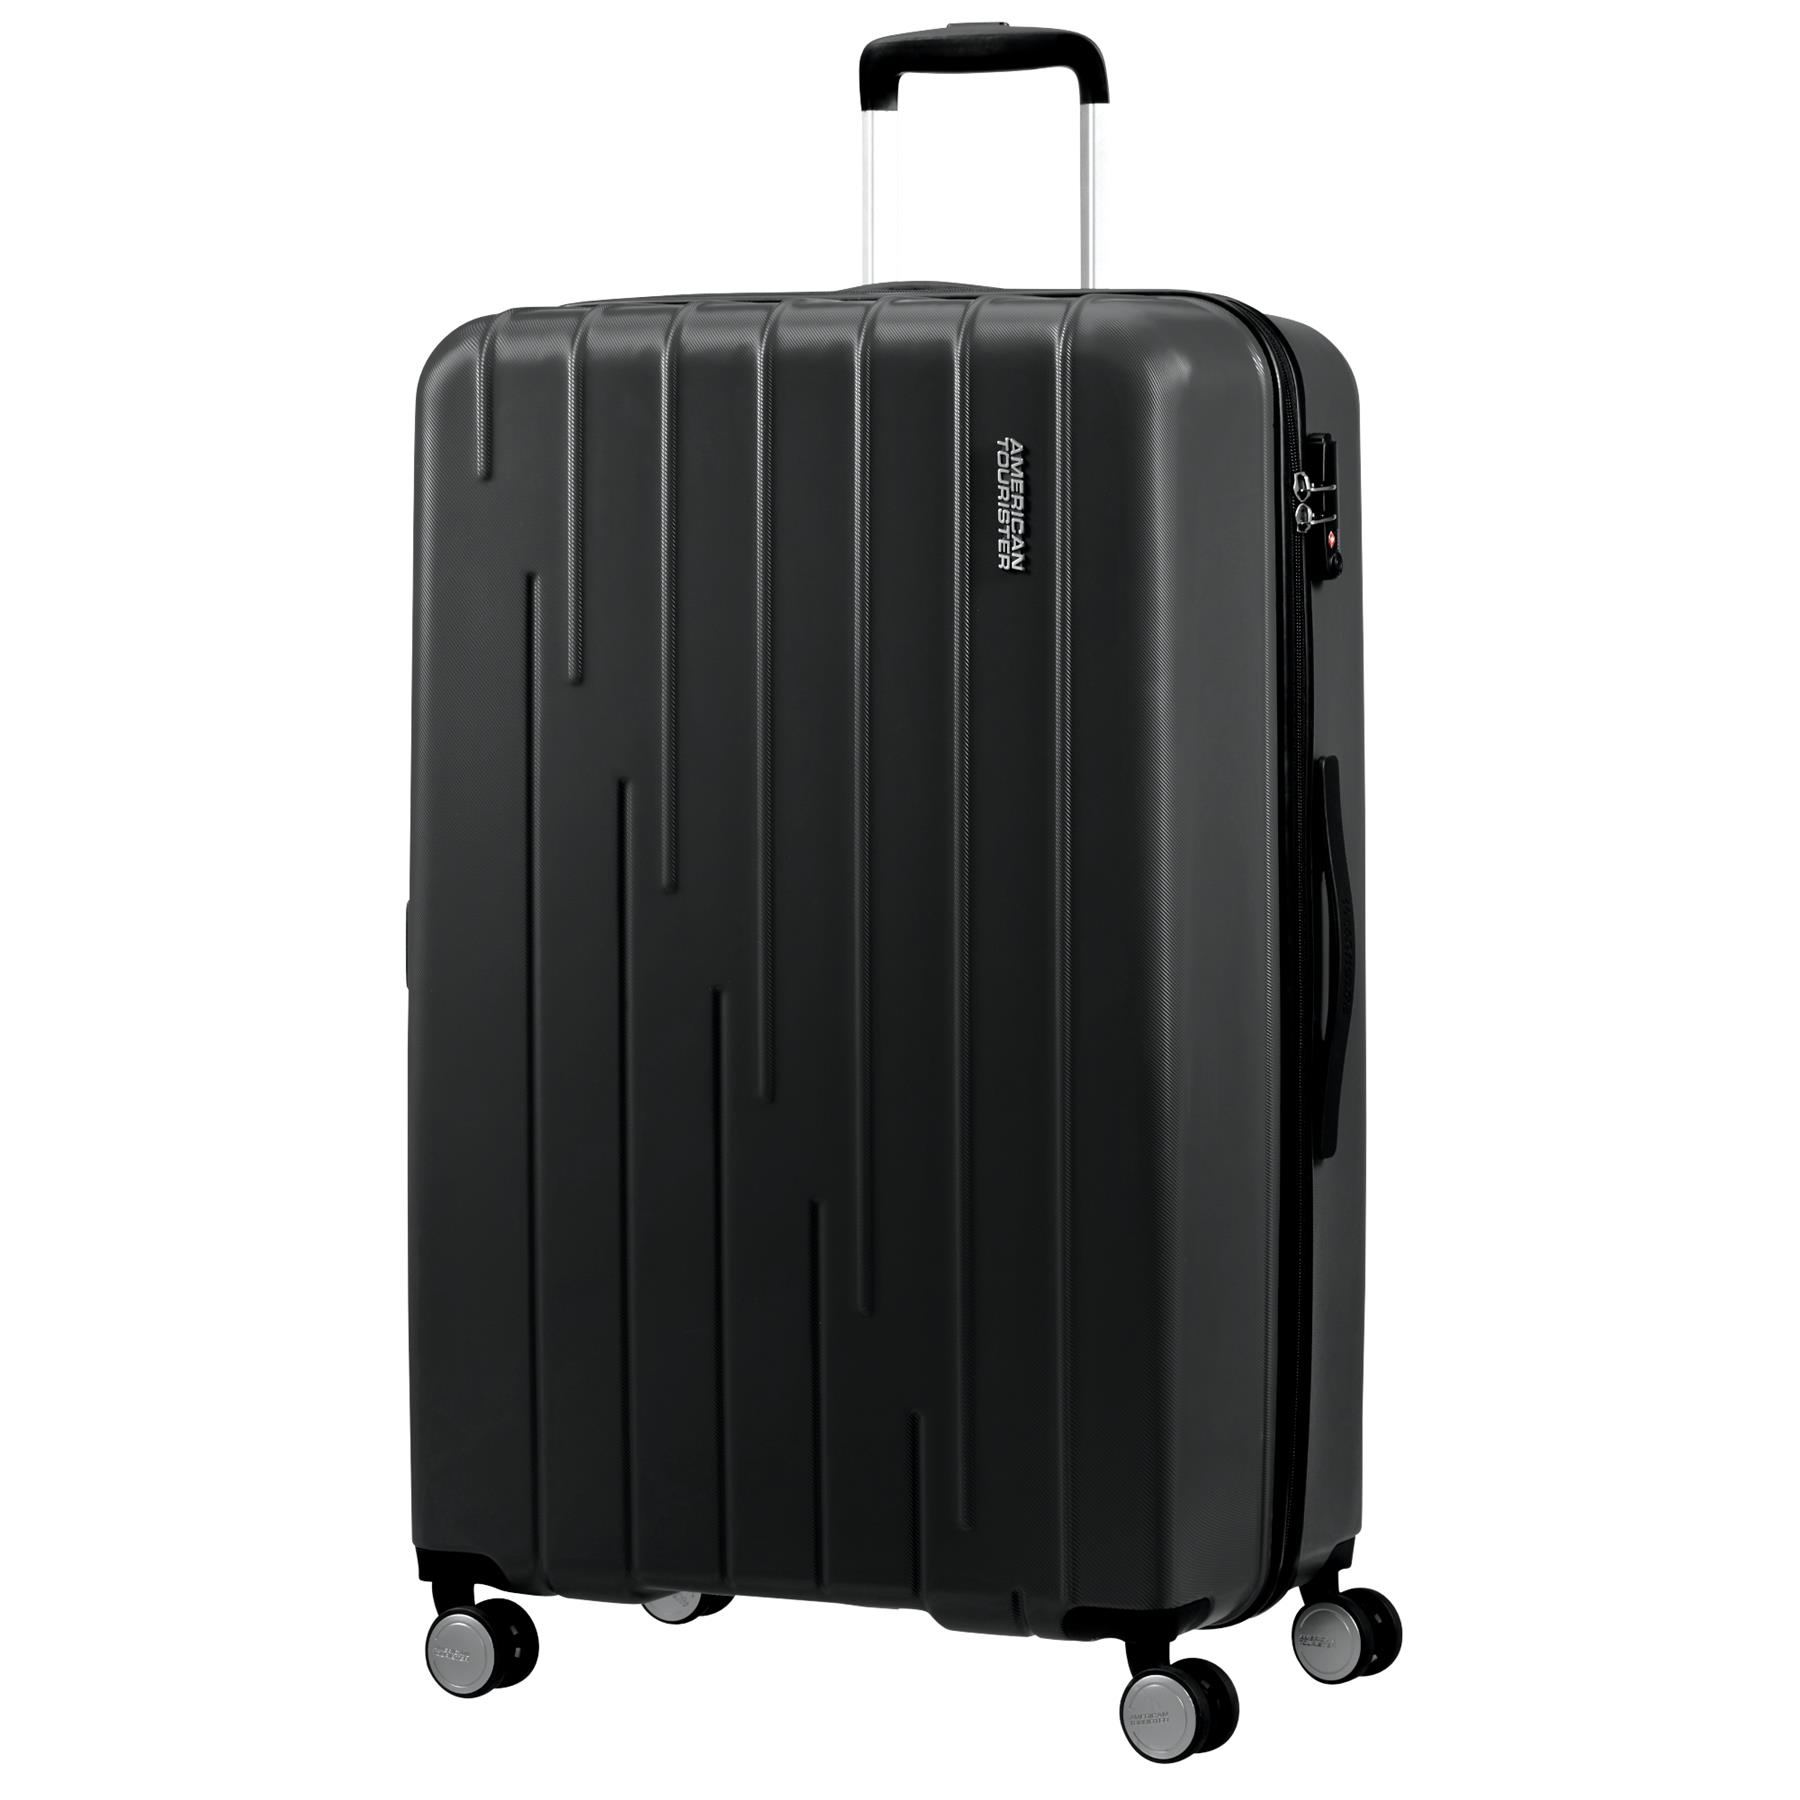 Lightweight Hardside Spinner 24 inches DUKAP Luggage Black Rodez Collection Black Suitcases with Wheels